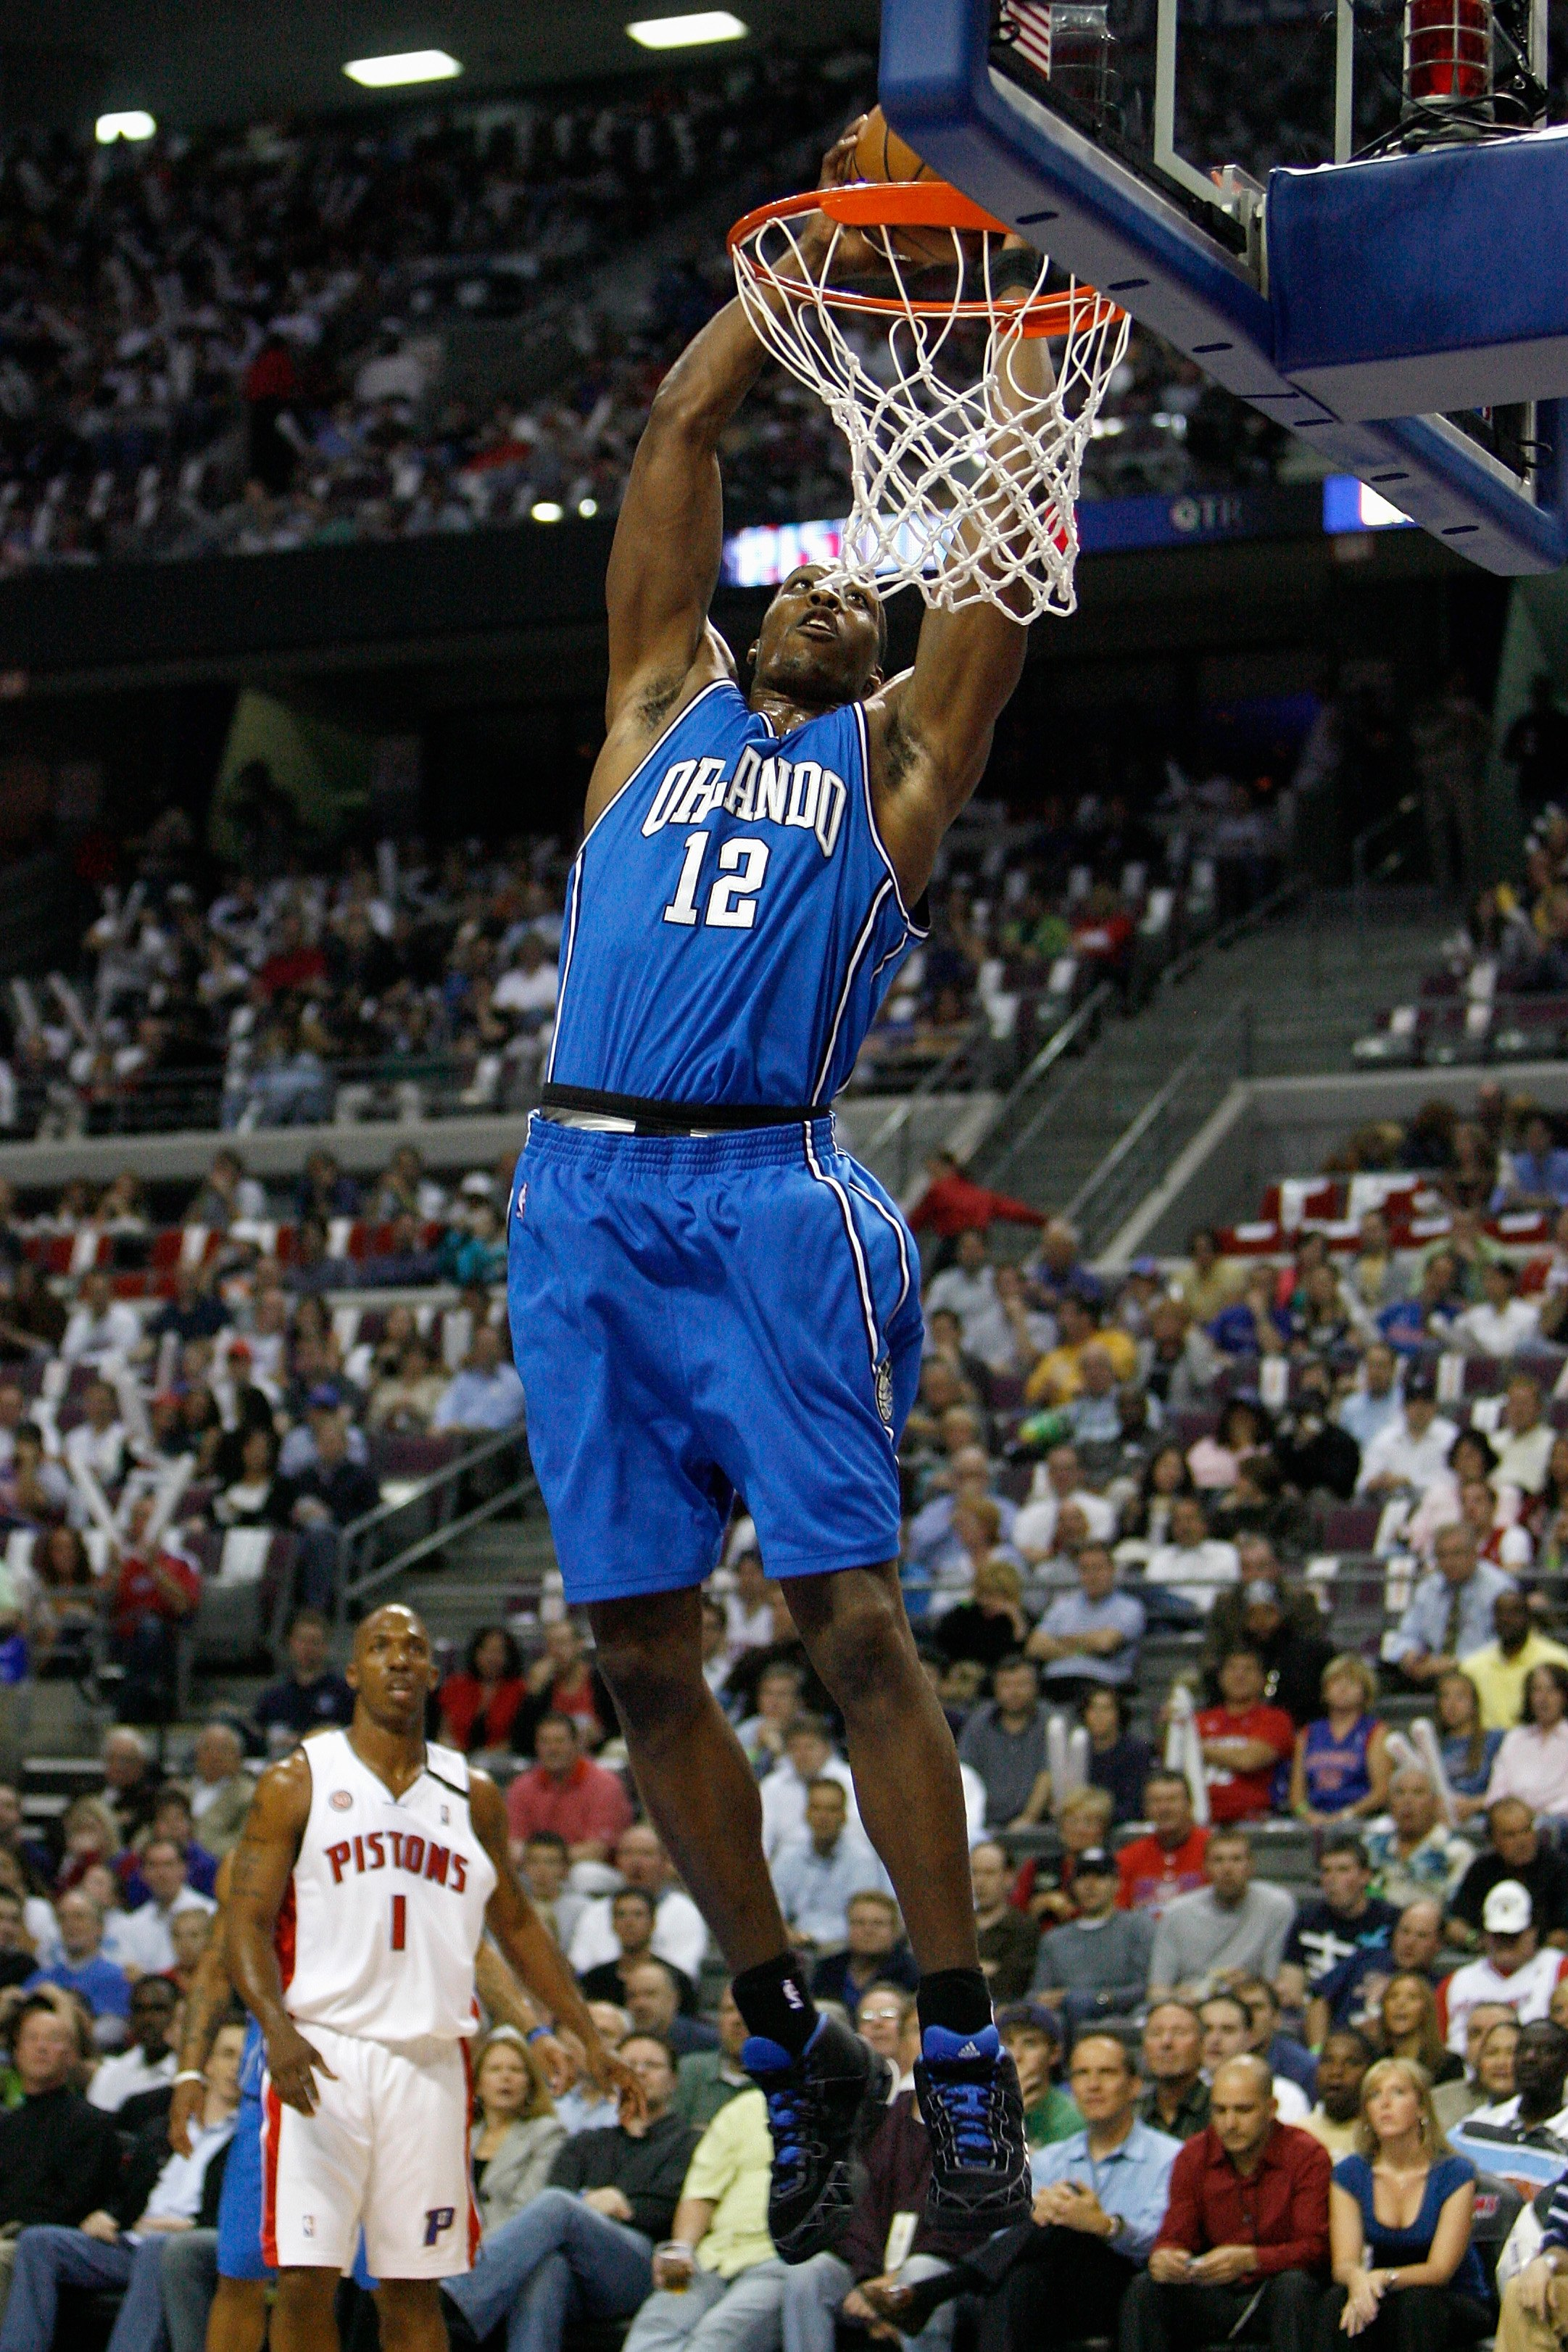 AUBURN HILLS, MI - MAY 5:  Dwight Howard #12 of the Orlando Magic slam dunks against the Detroit Pistons in Game Two of the Eastern Conference Semifinals during the 2008 NBA Playoffs on May 5, 2008 at the Palace of Auburn Hills in Auburn Hills, Michigan.